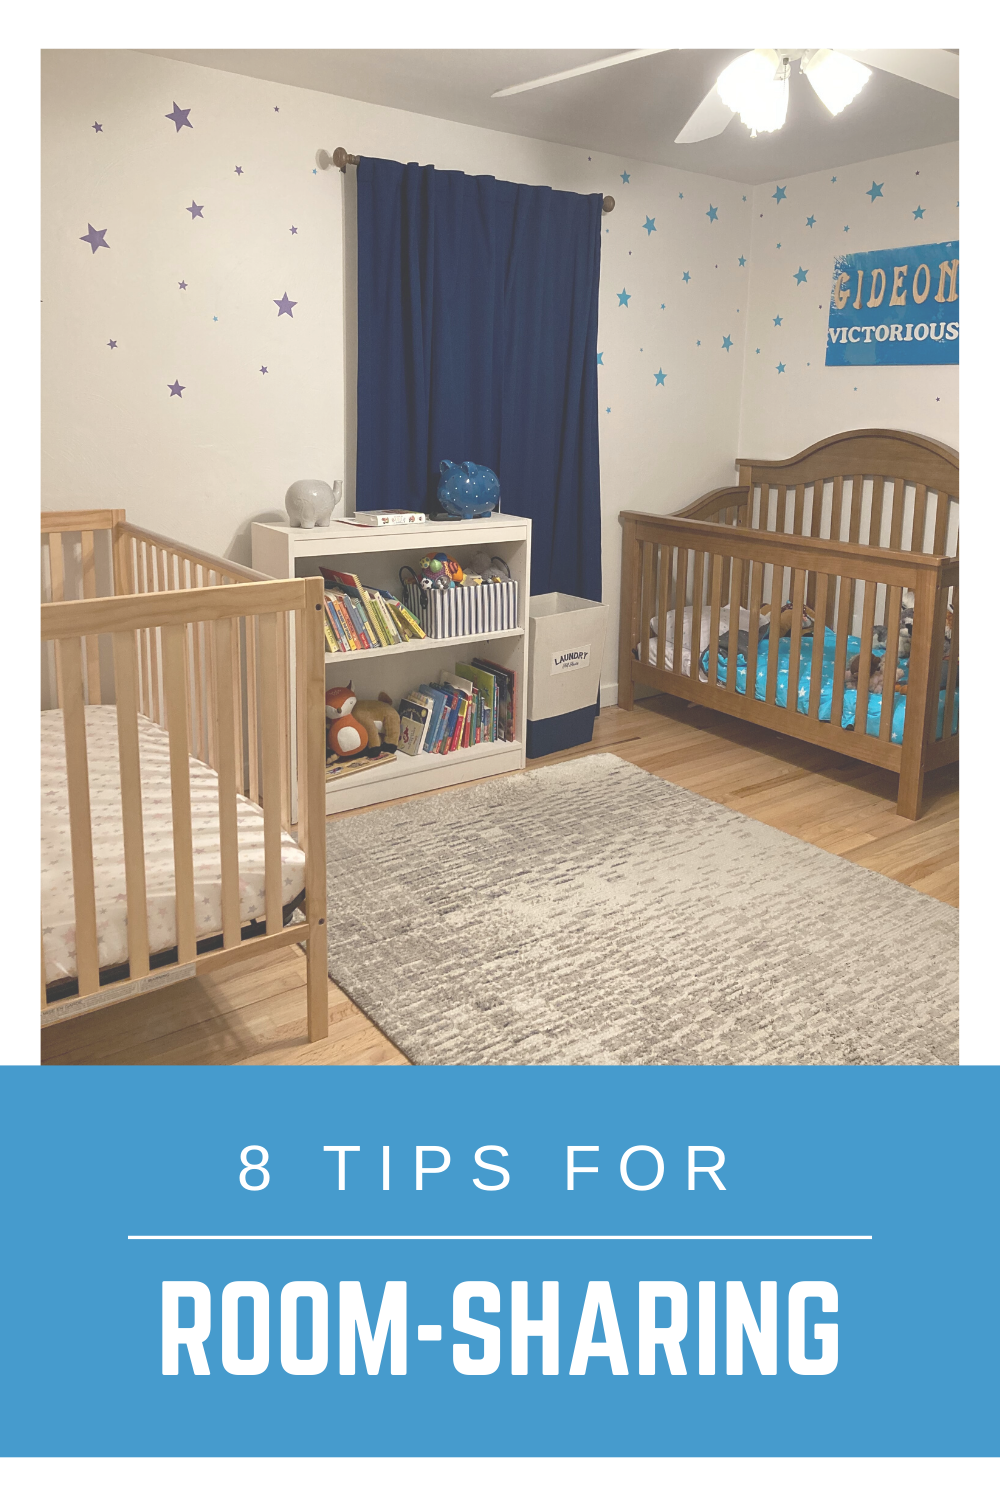 Little Bell Sleep Solutions, room-sharing with siblings, tips for room-sharing, two cribs, nursery décor, Pittsburgh sleep consultant